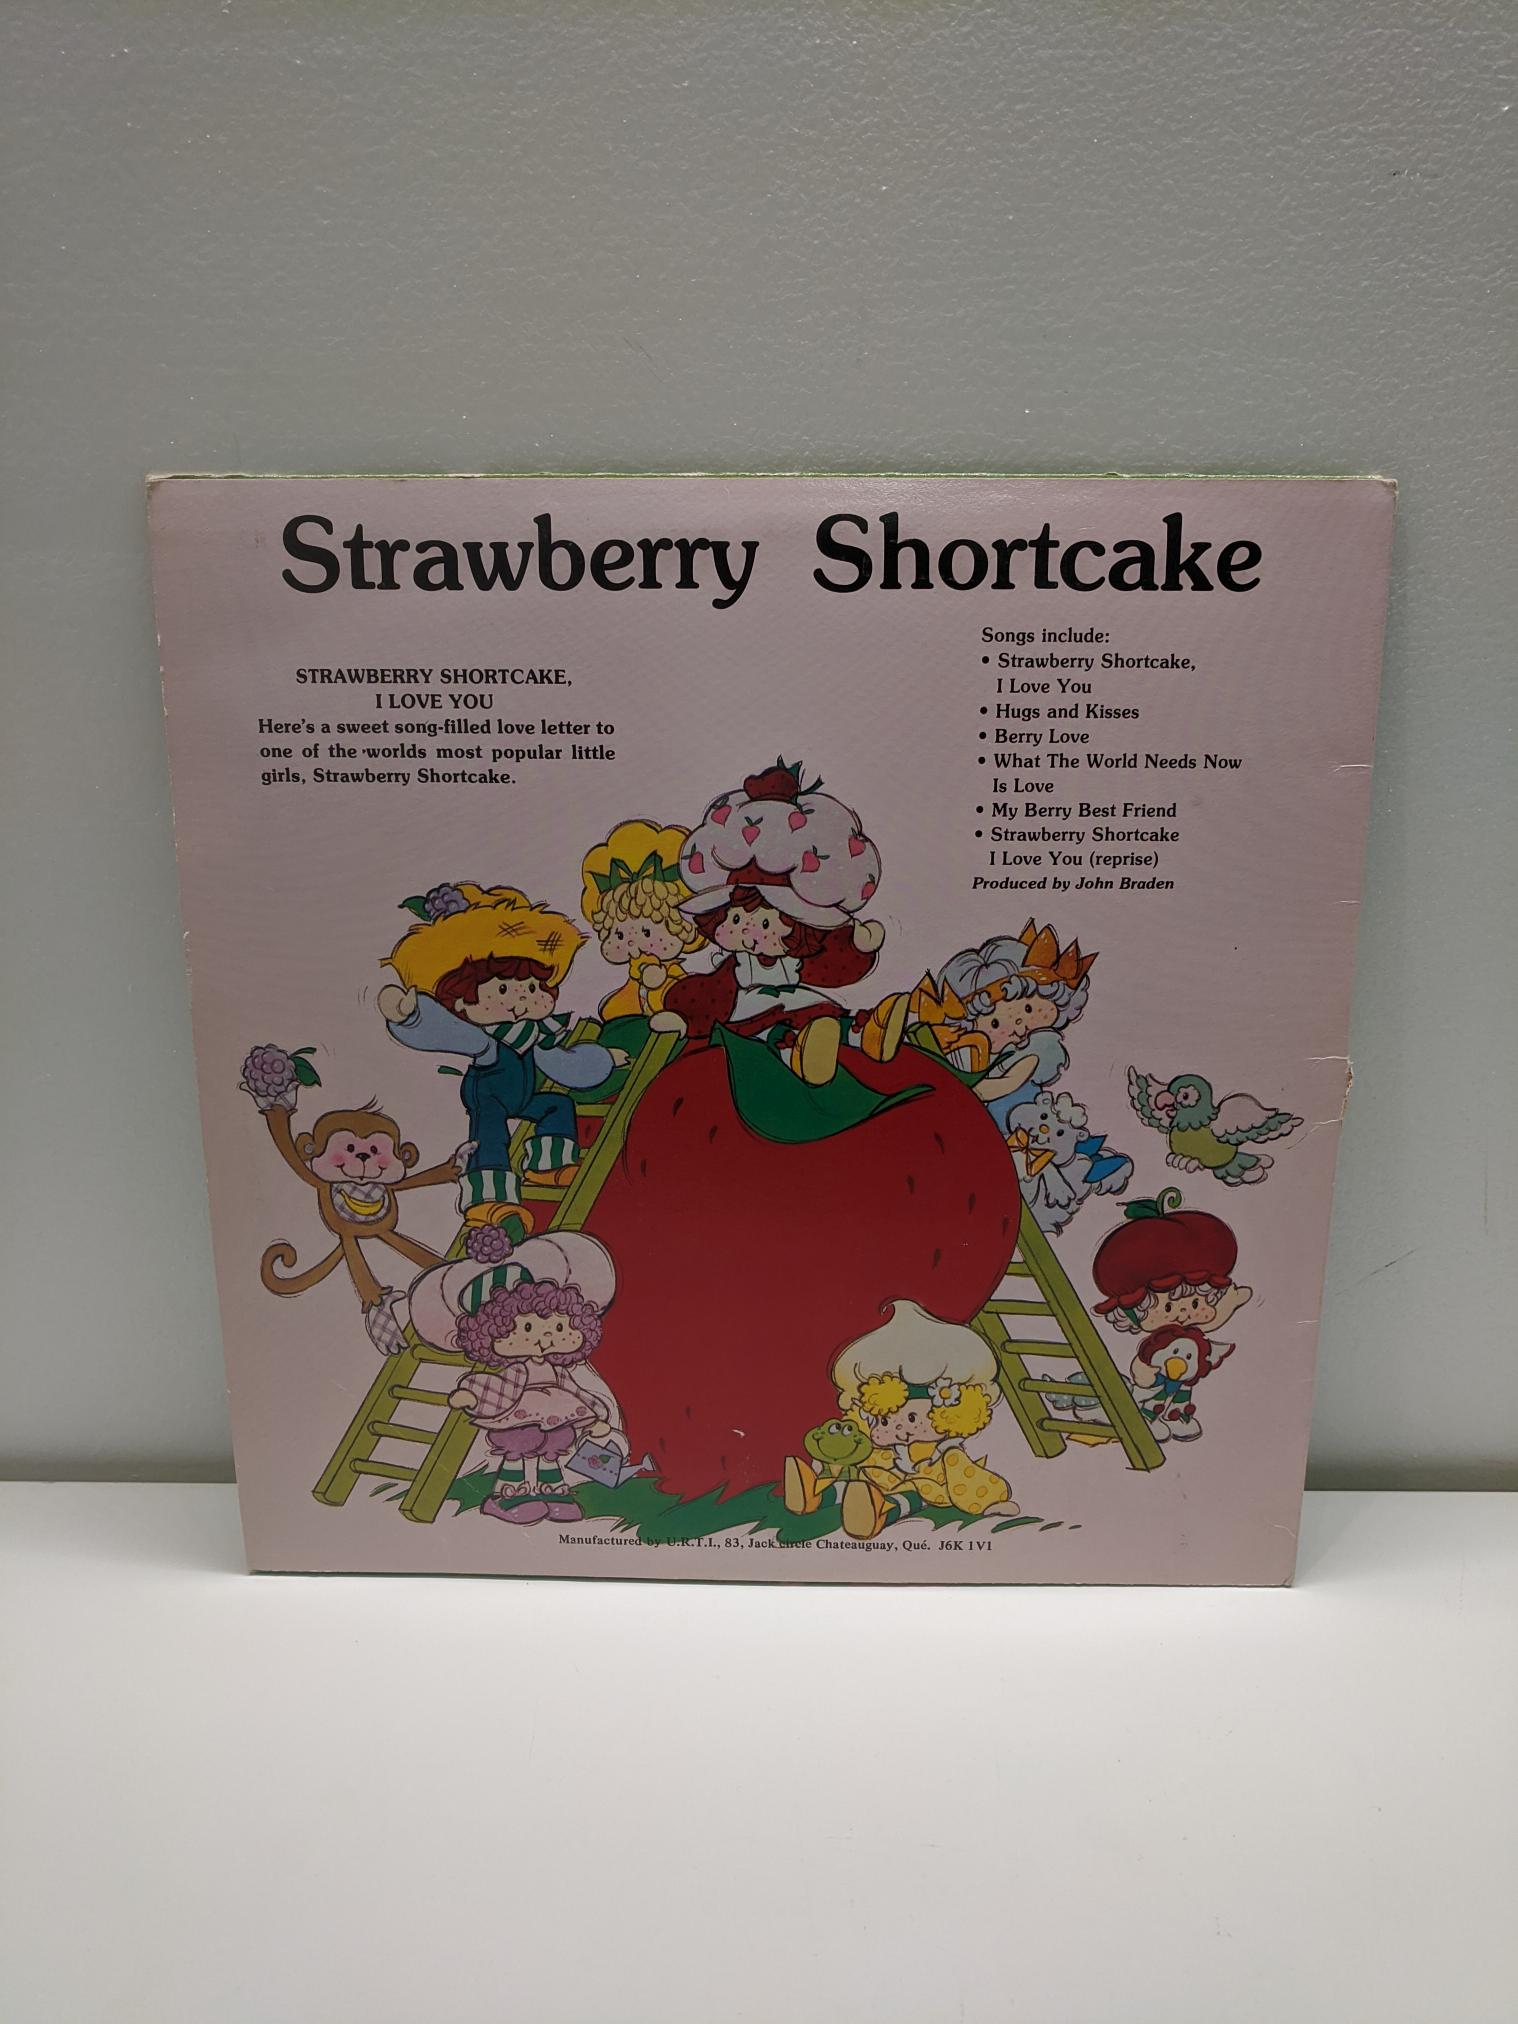 Strawberry Shortcake - I Love You! Vinyl